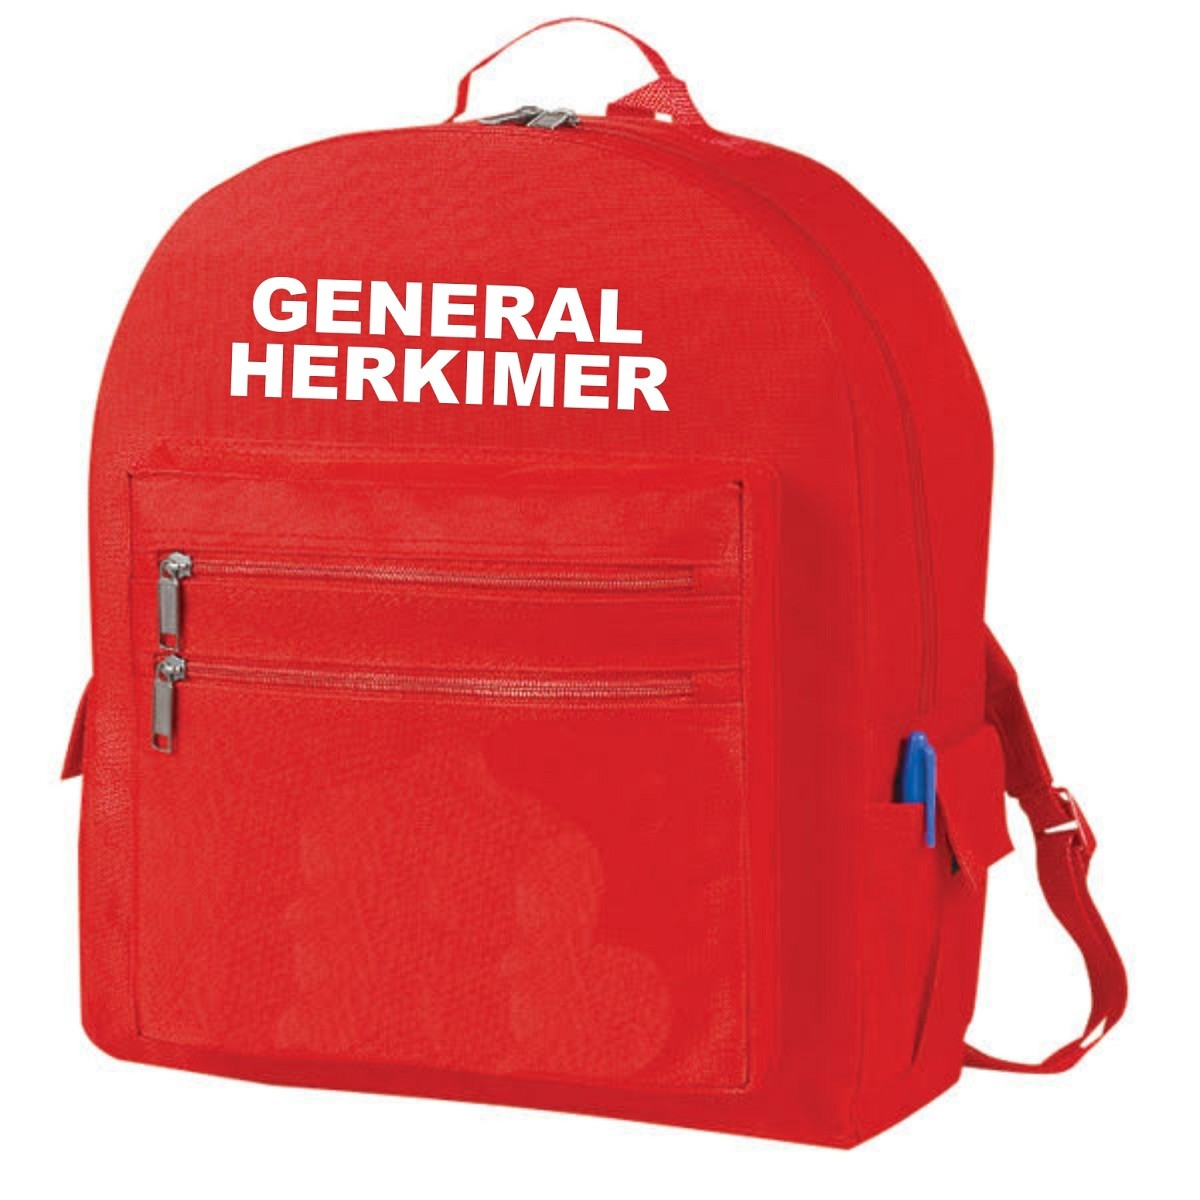 General Herkimer Nylon Backpacks